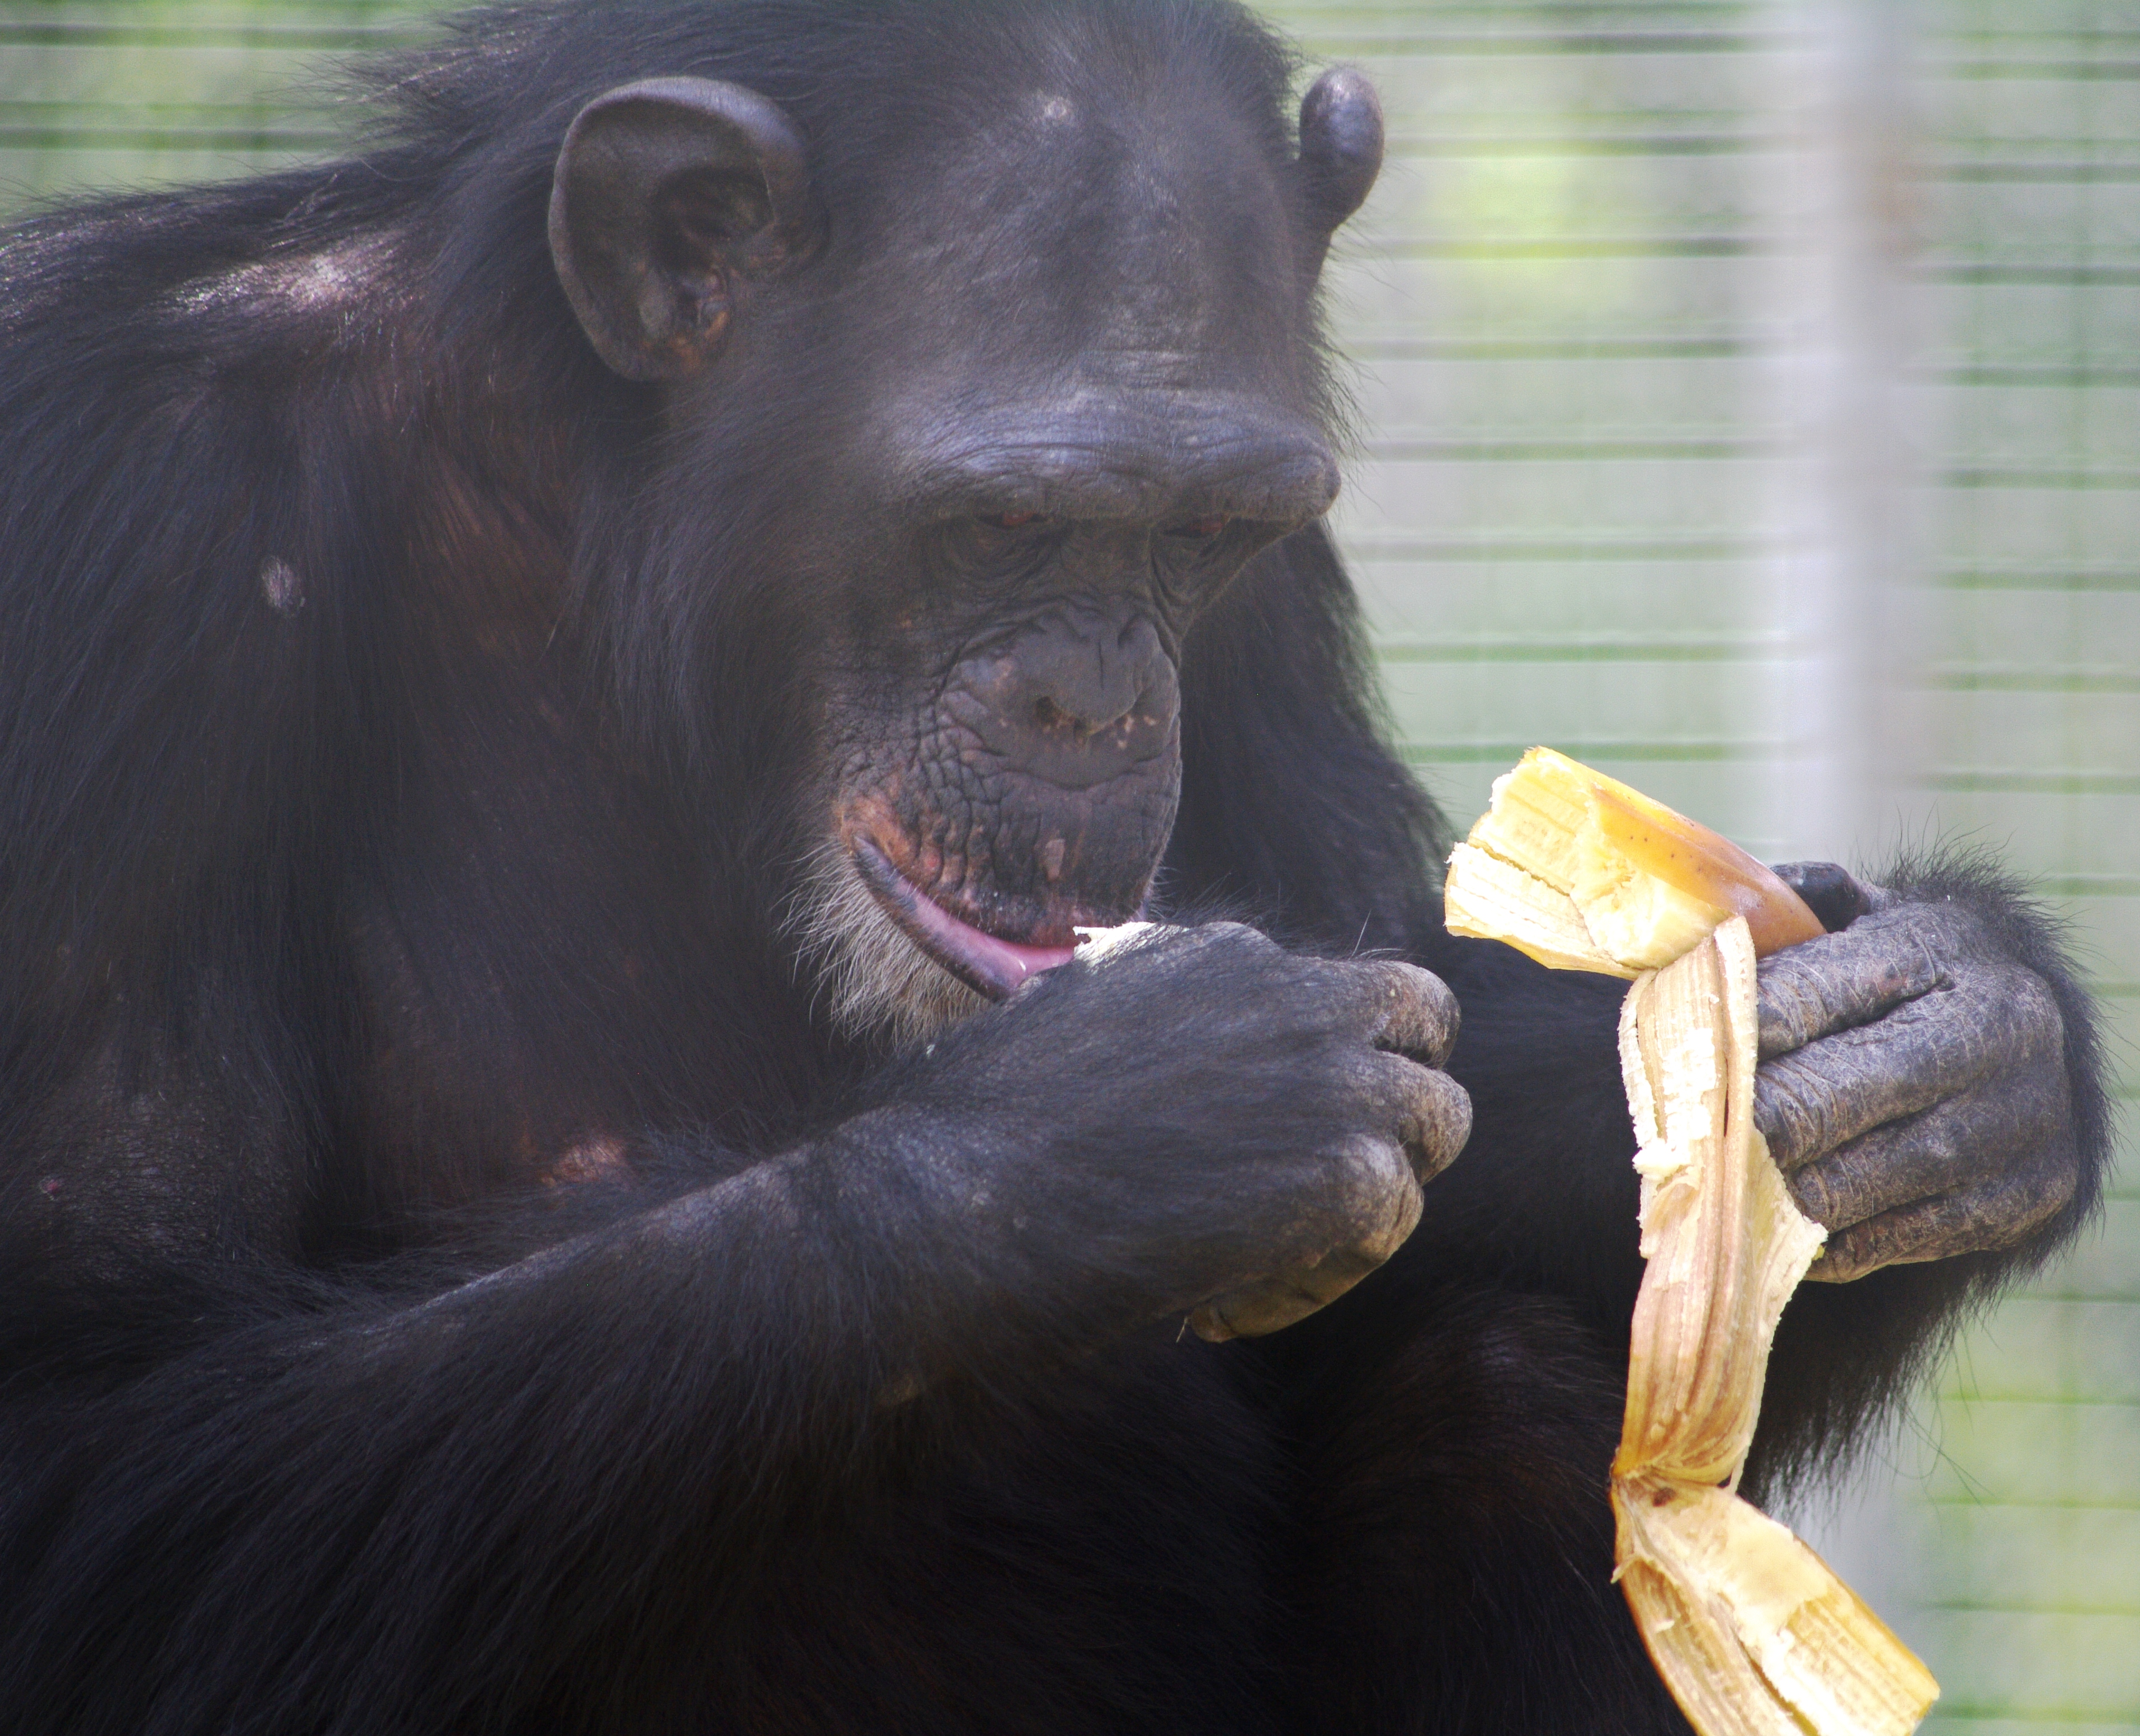 A chimp holding an empty banana peel in his left hand, with the banana in his right hand positioned close to his mouth